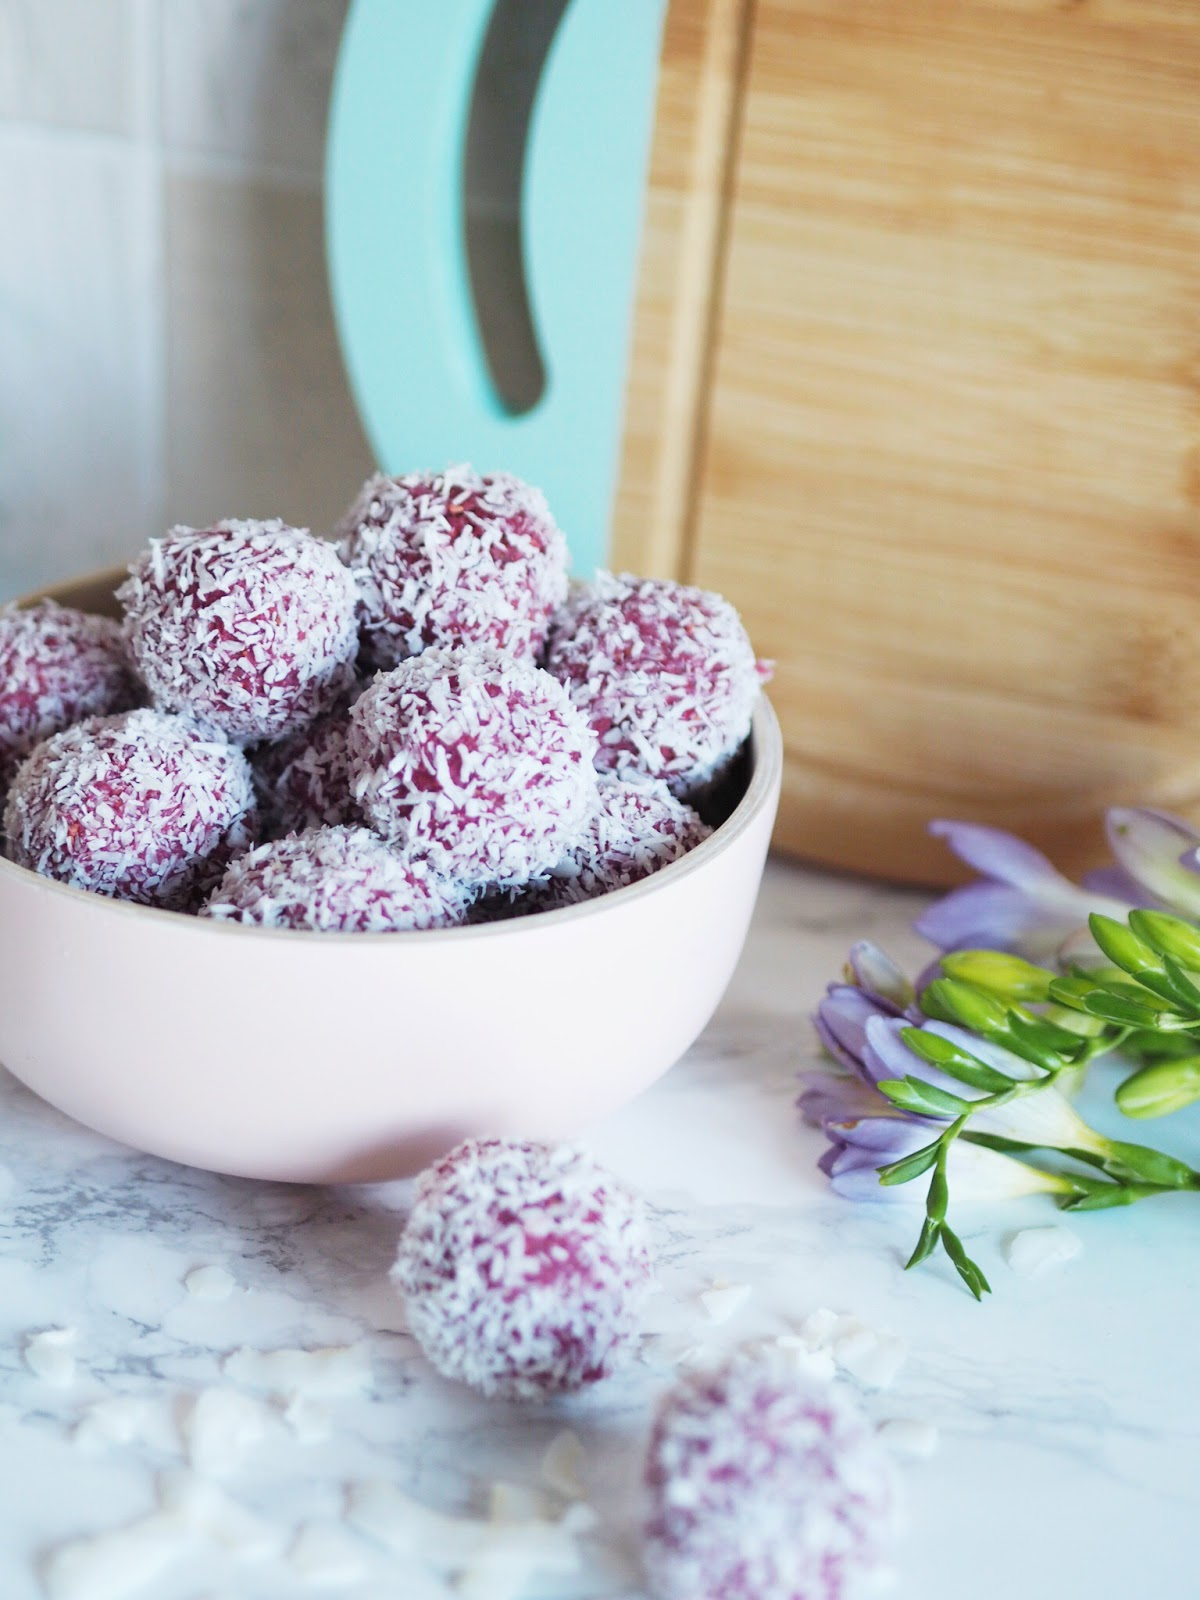 Raspberry & Coconut Protein Energy Balls in Pink Bamboo Bowl